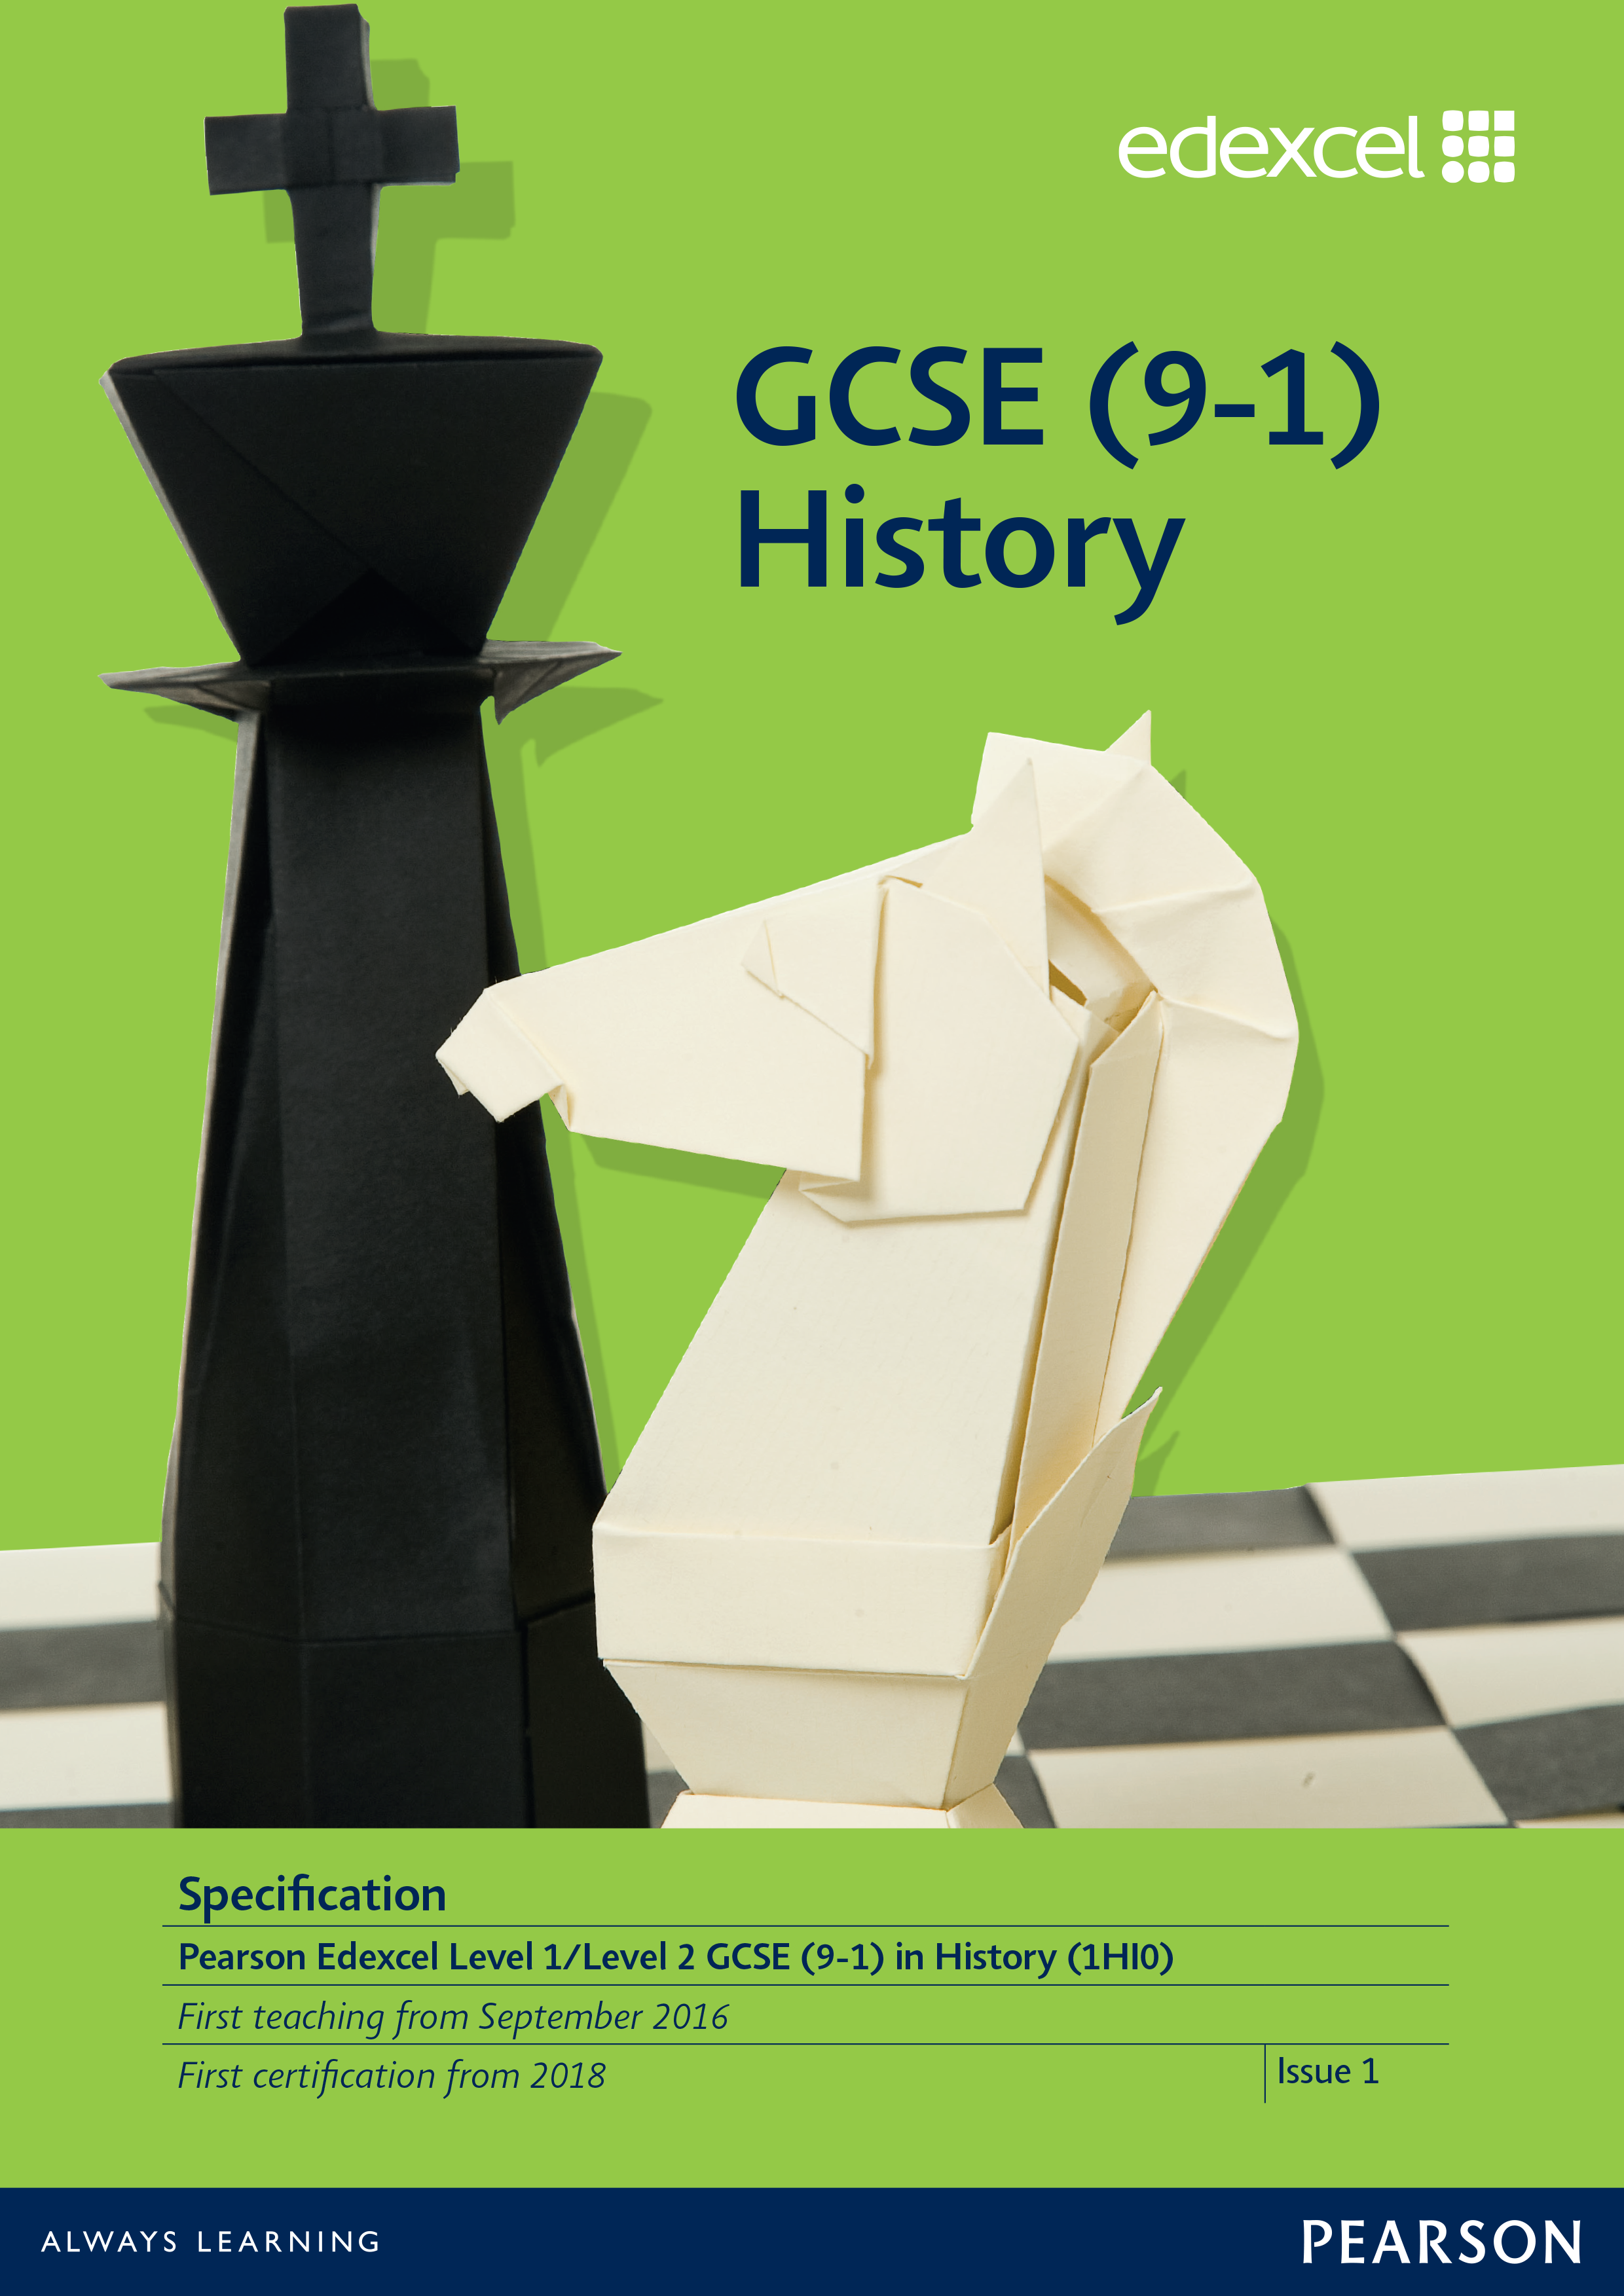 Link to Edexcel GCSE History (2016) specification page